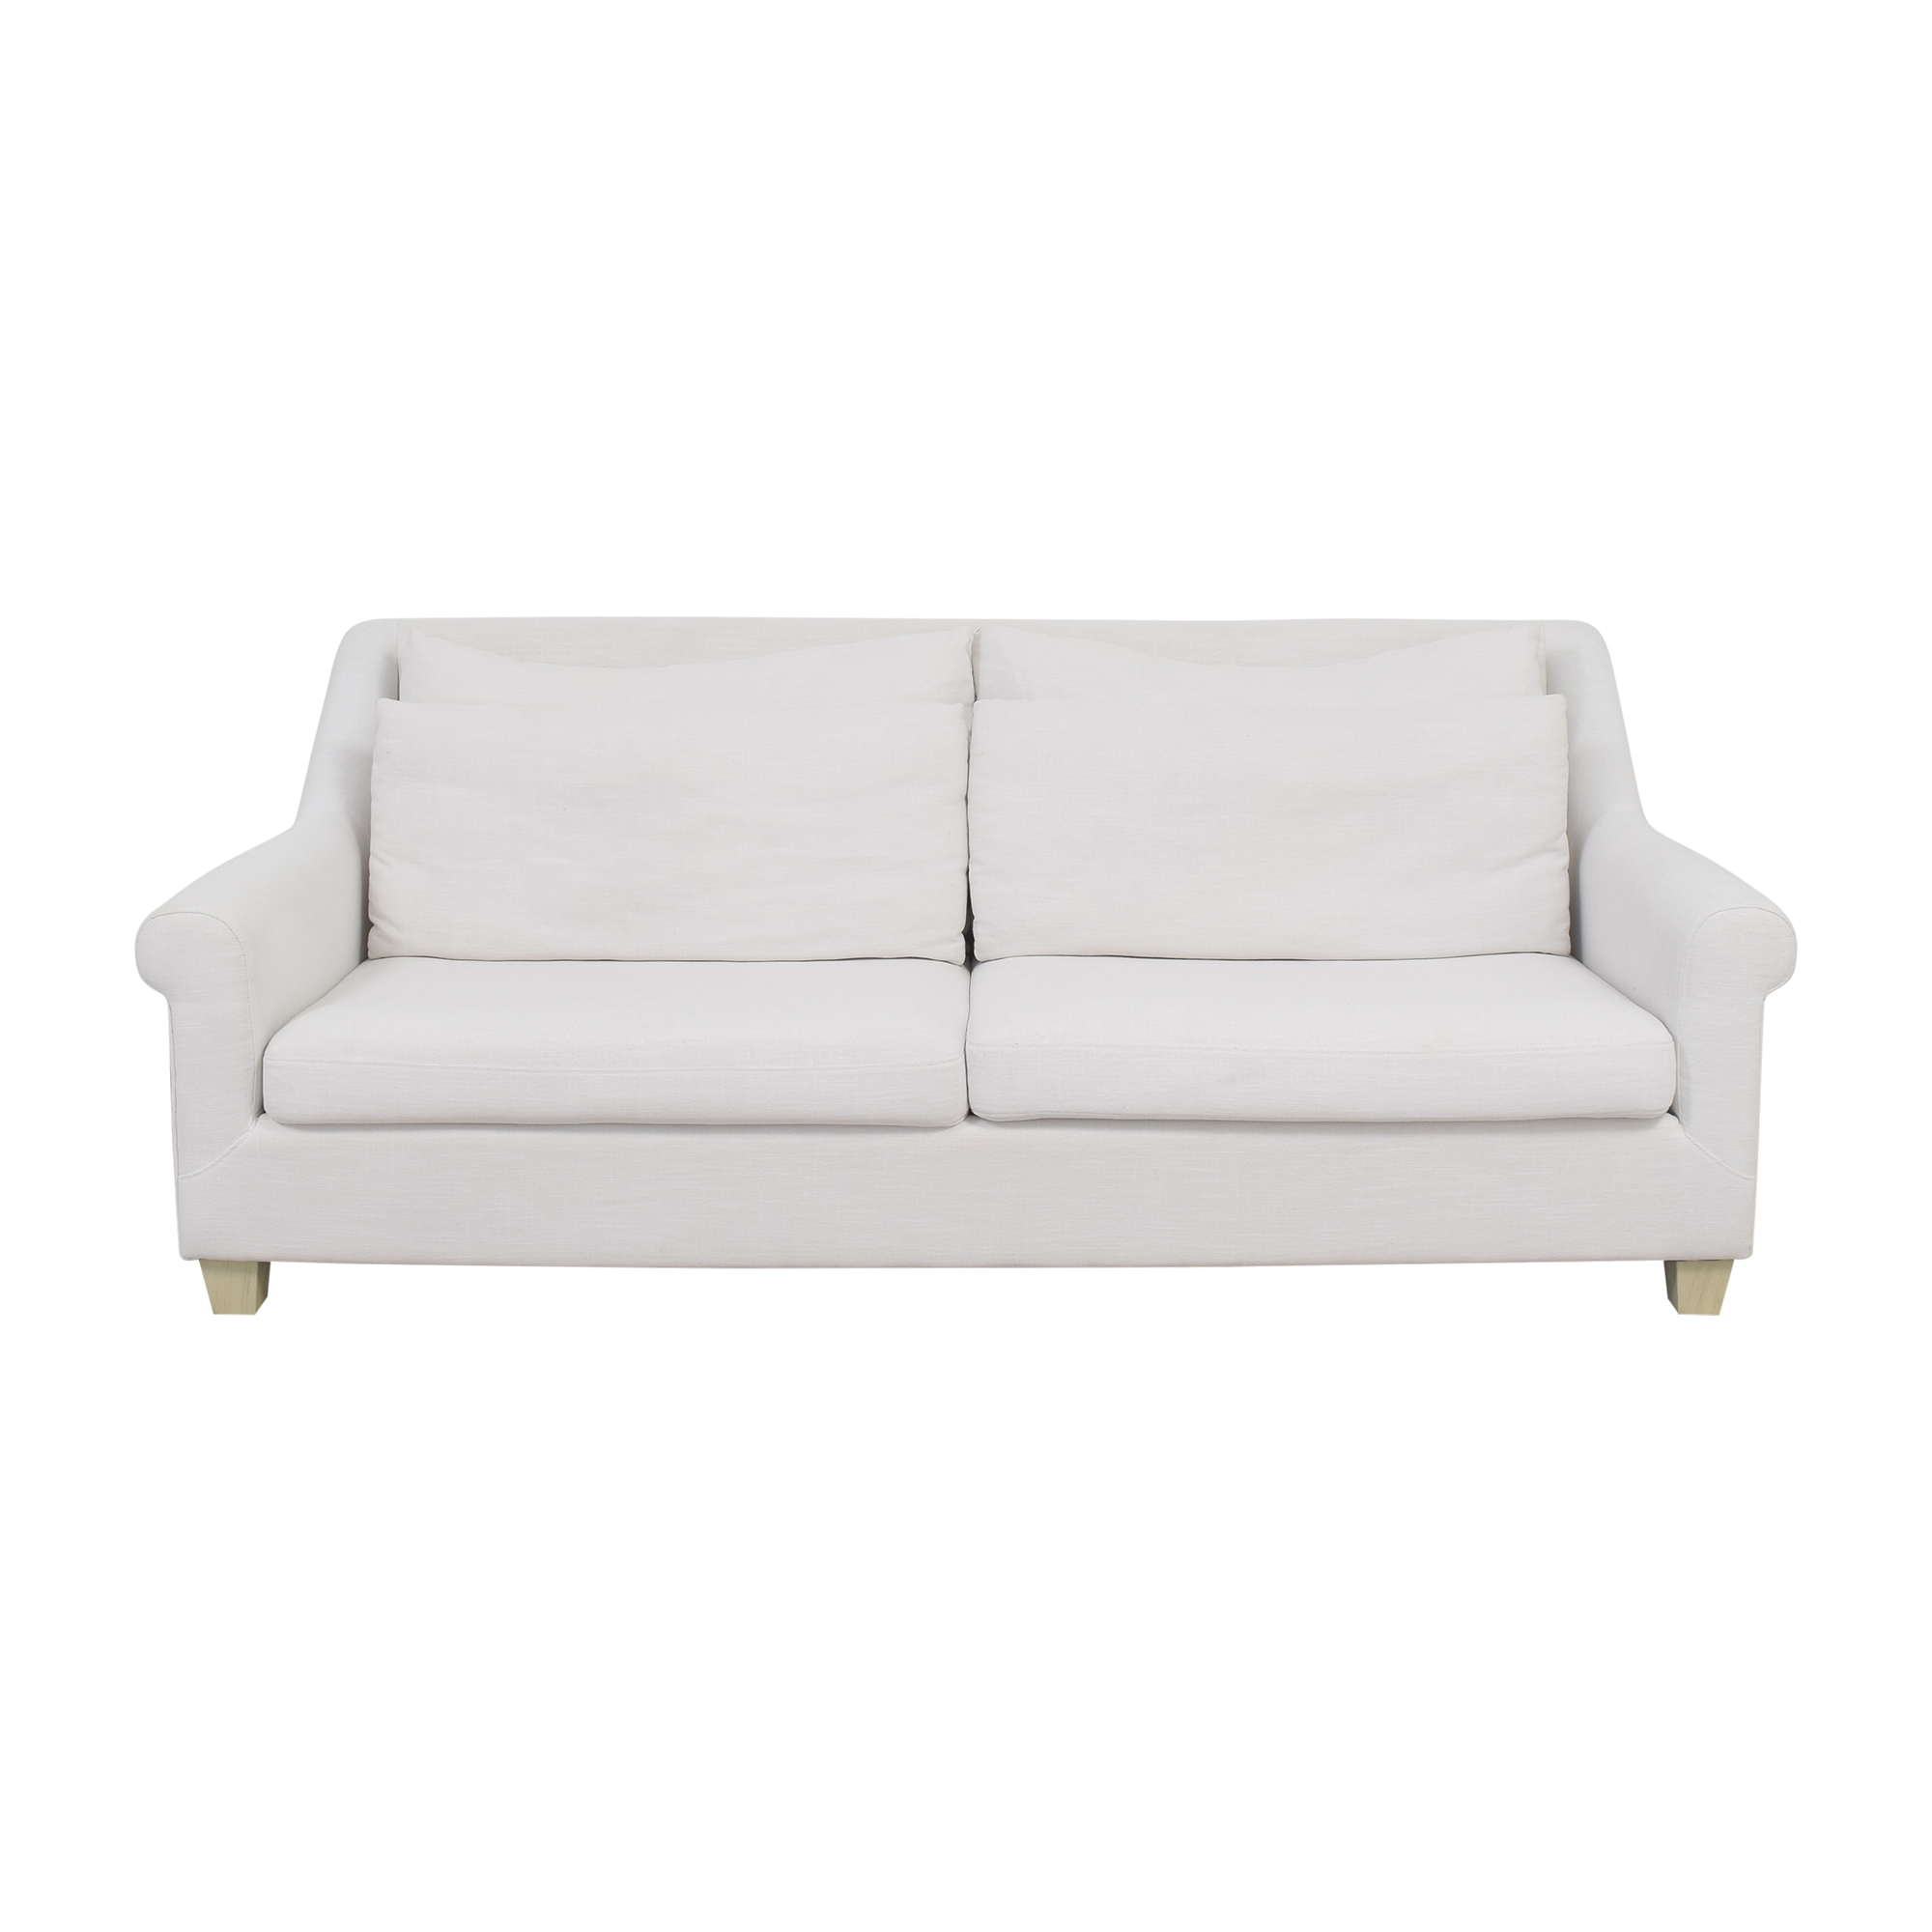 Bed Bath & Beyond Bed Bath & Beyond Bee & Willow Home Roll Arm Sofa Sofas